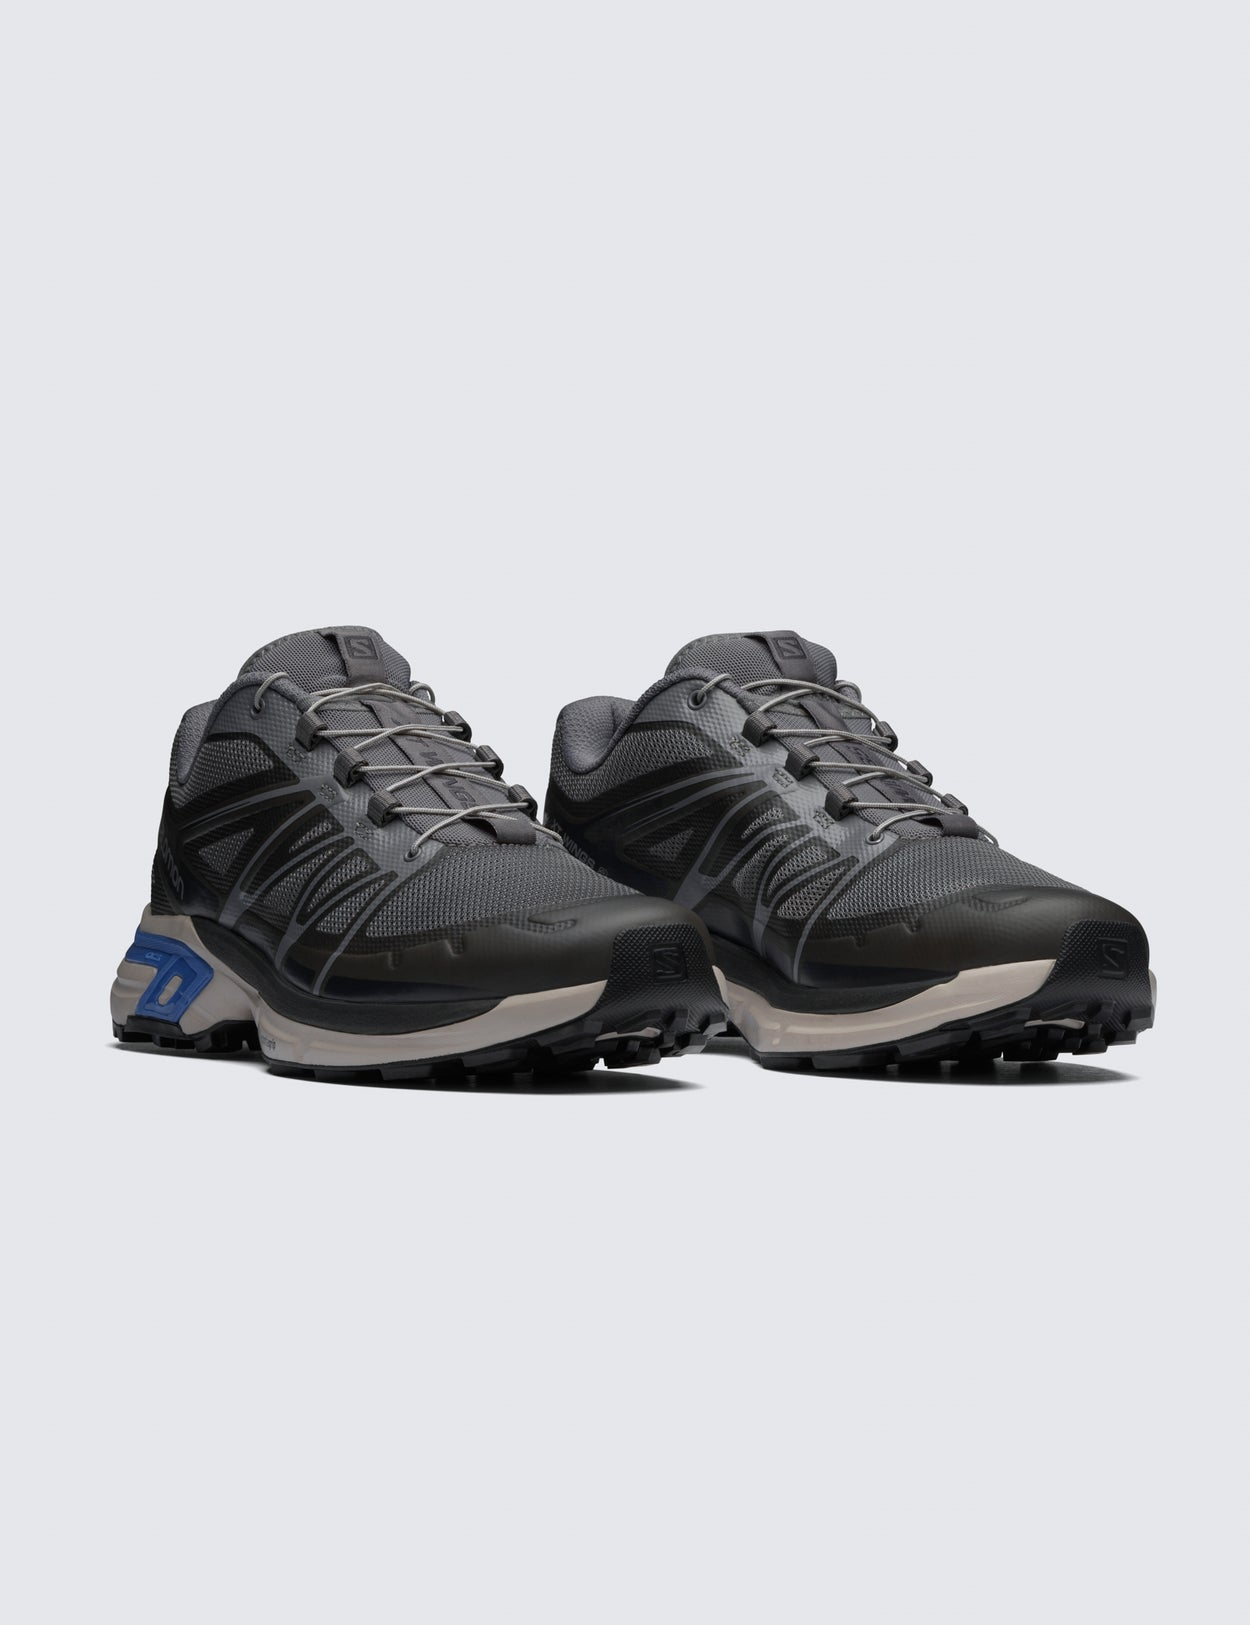 QUIET SHADE GREY XT-WINGS 2 ADVANCED SNEAKERS